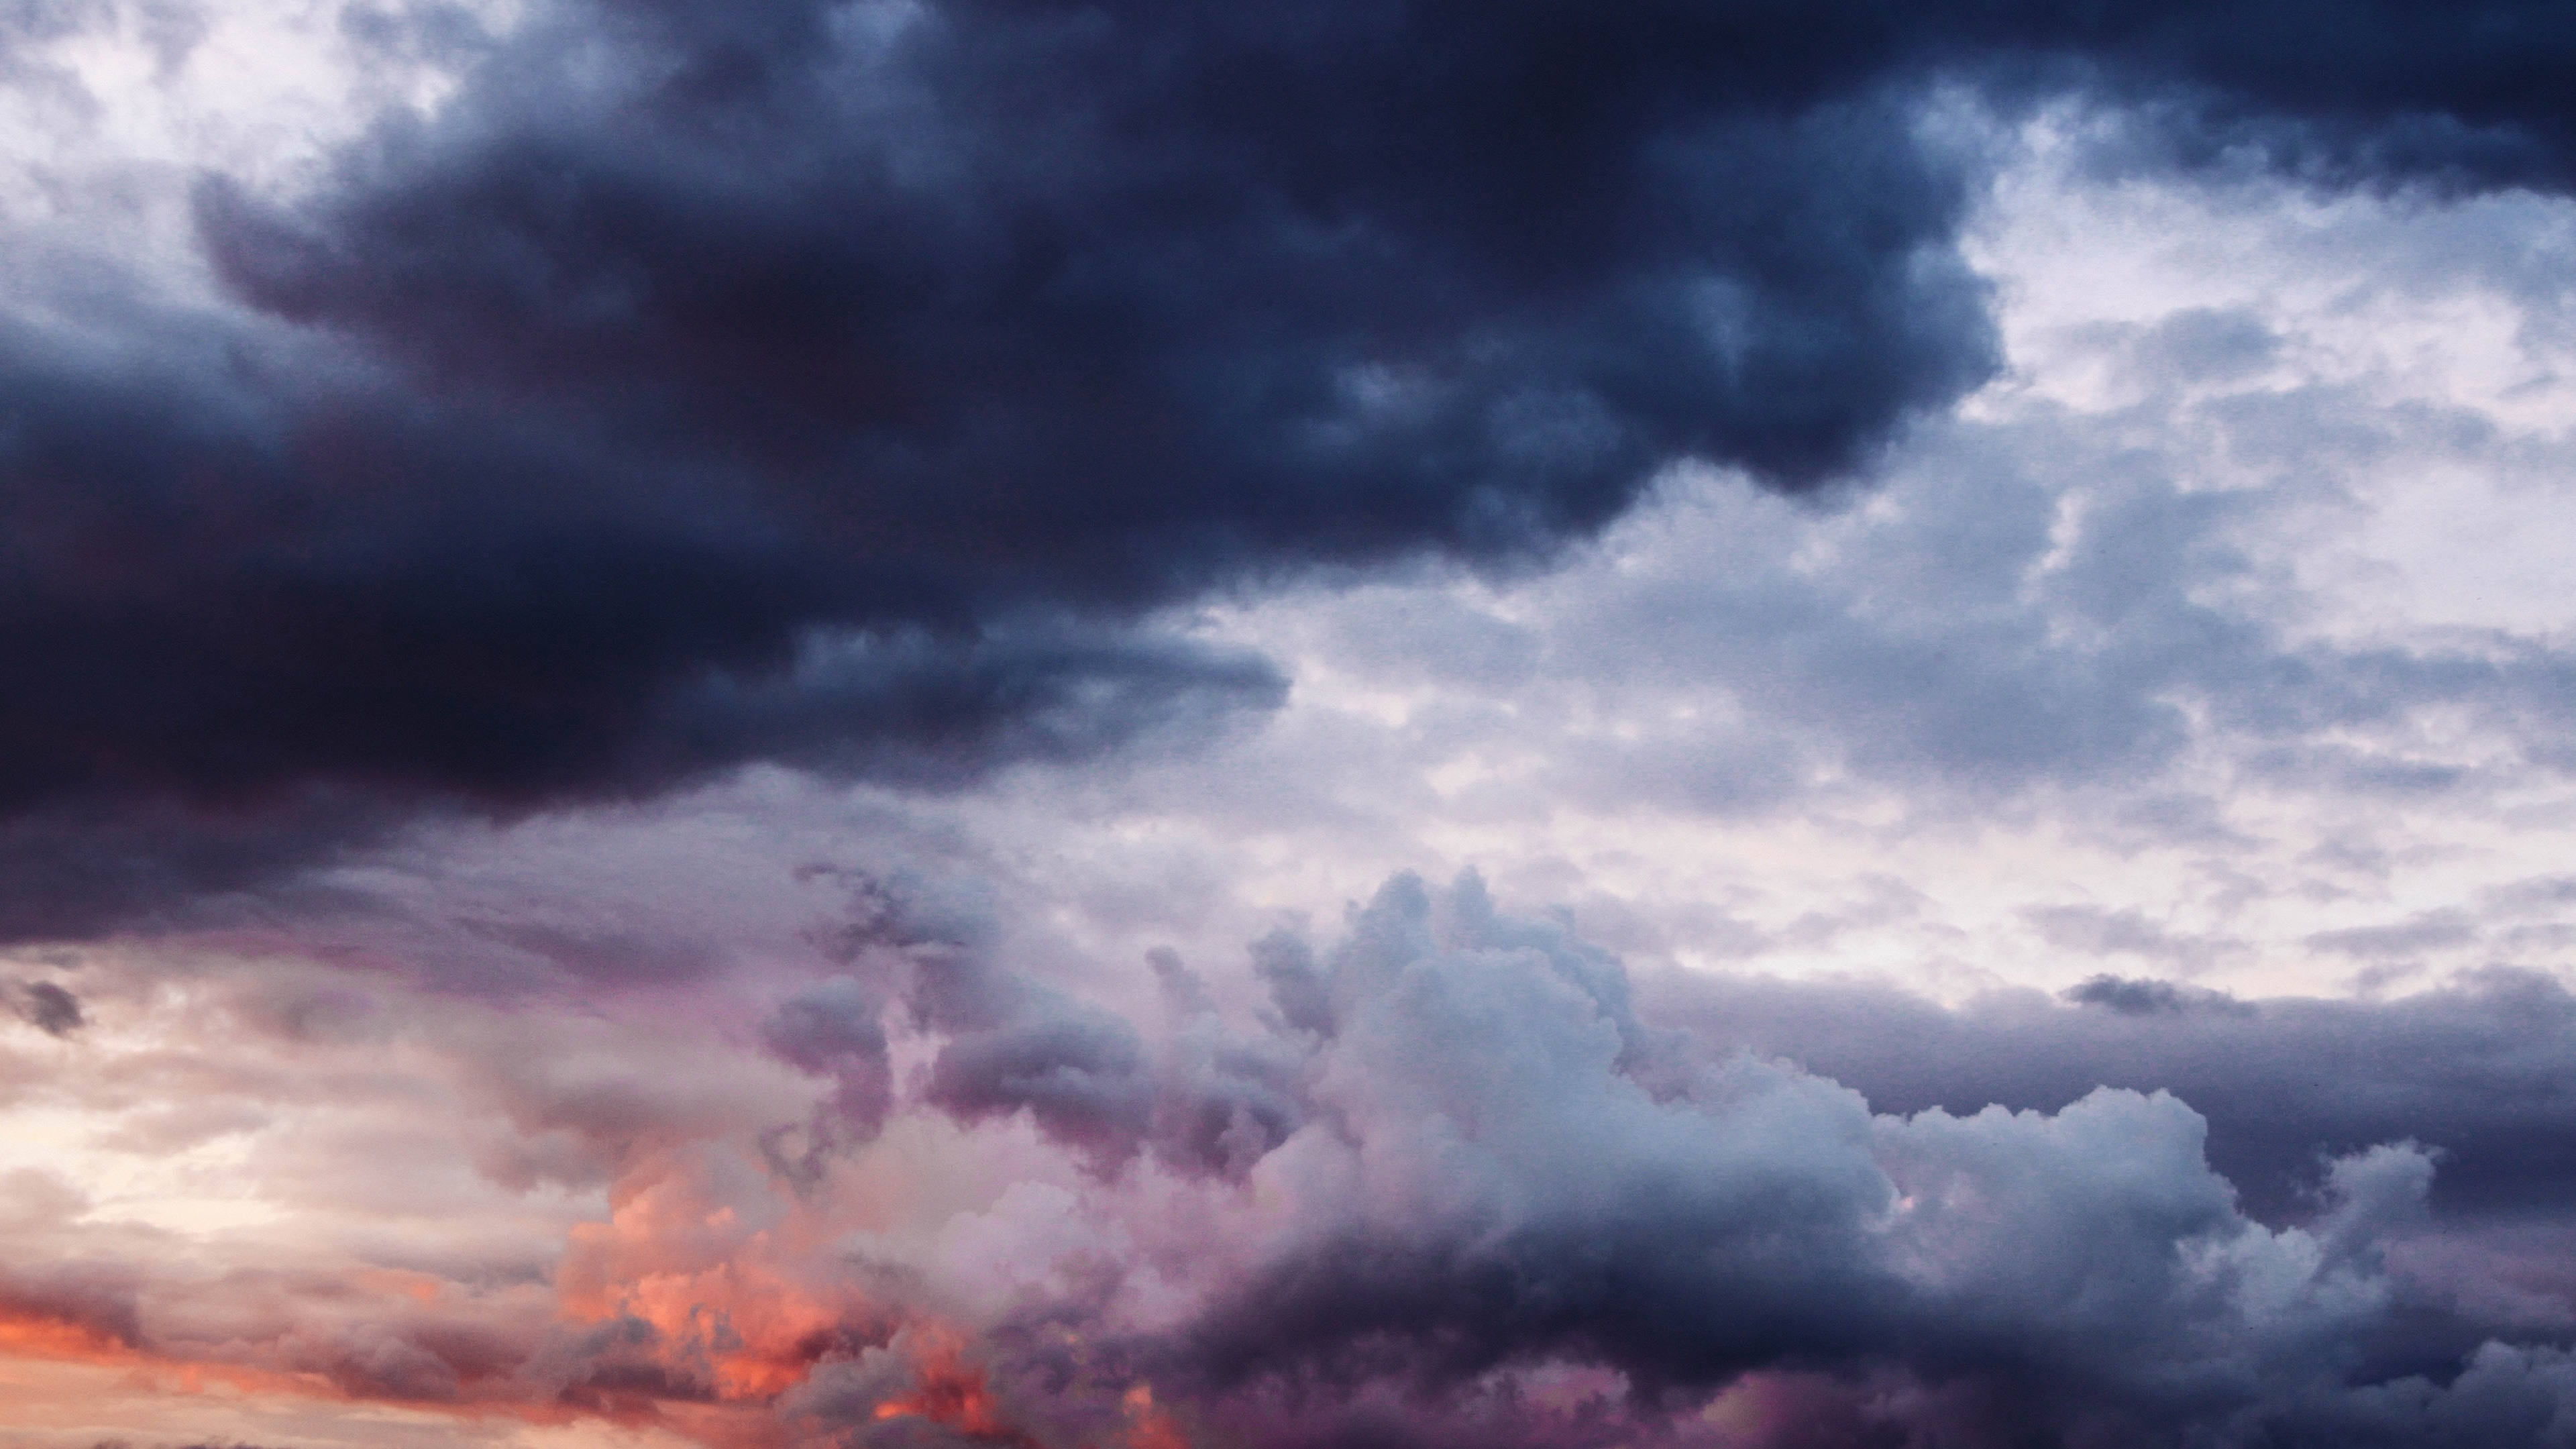 Wallpaper Cloudy Sky Thick Clouds 3840x2160 Uhd 4k Picture